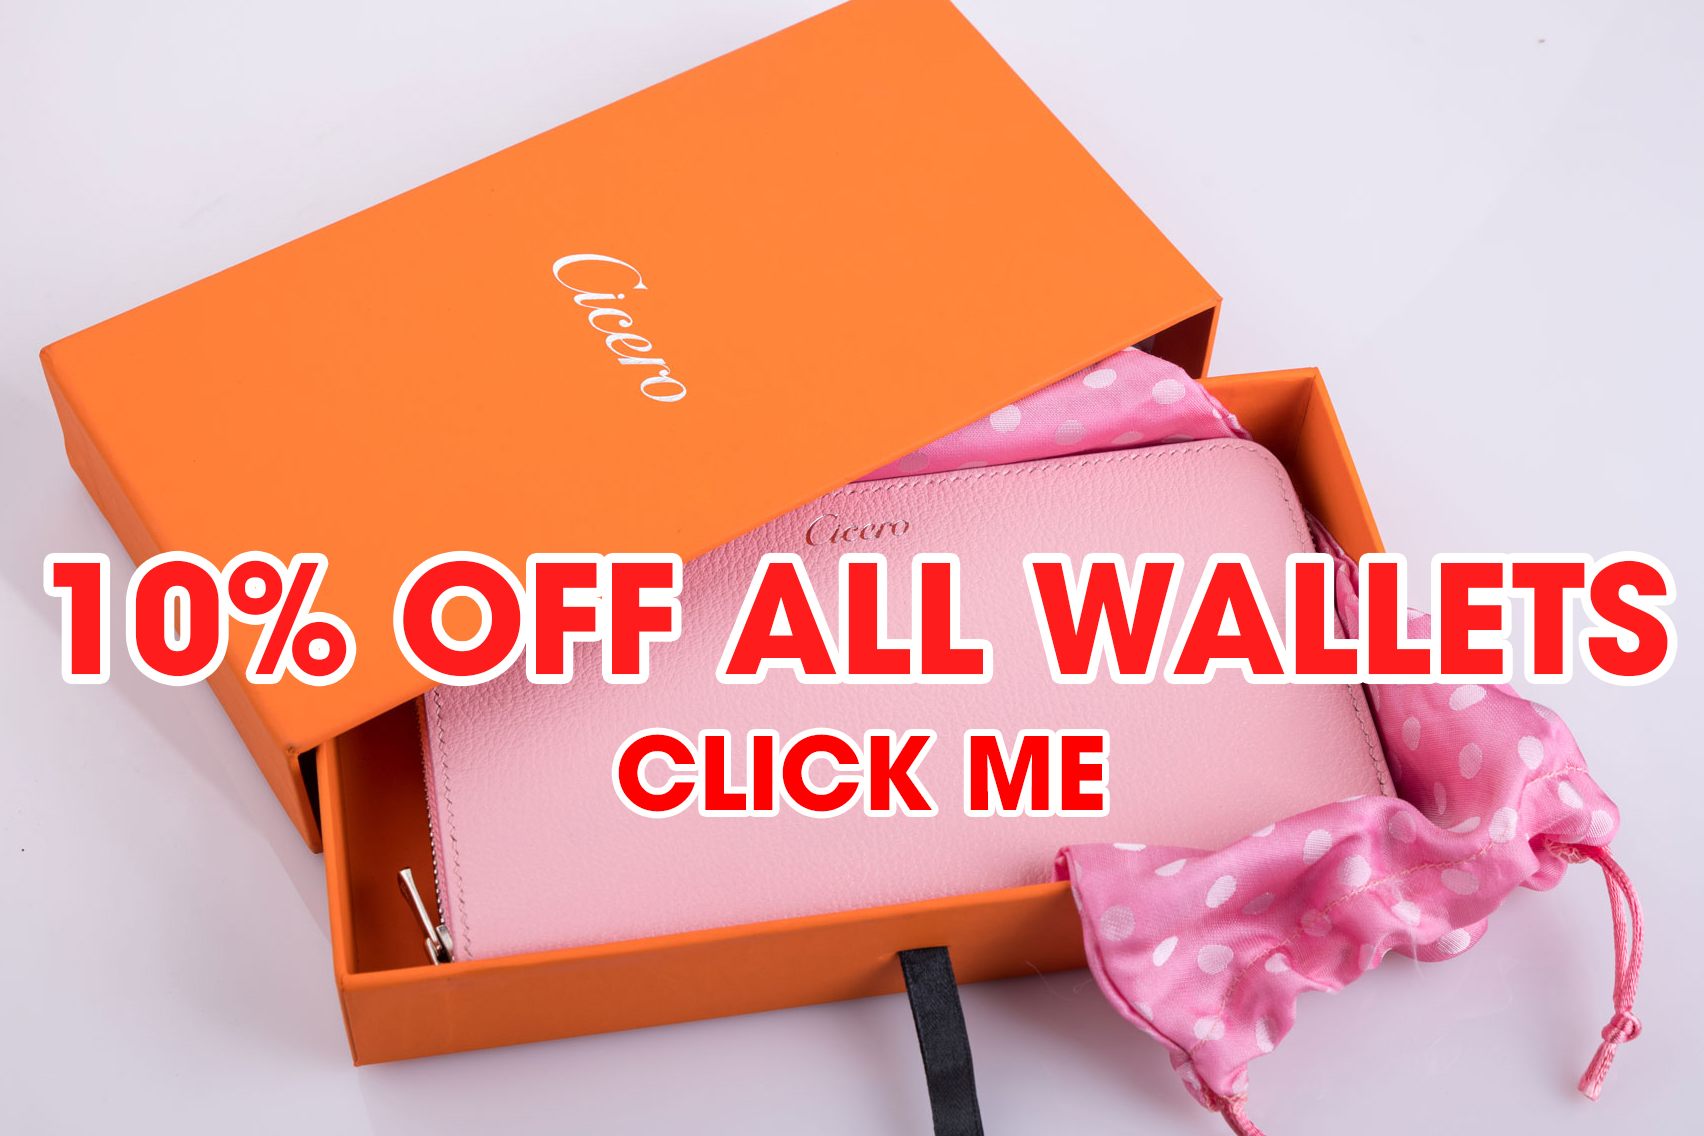 10% OFF ALL WALLETS